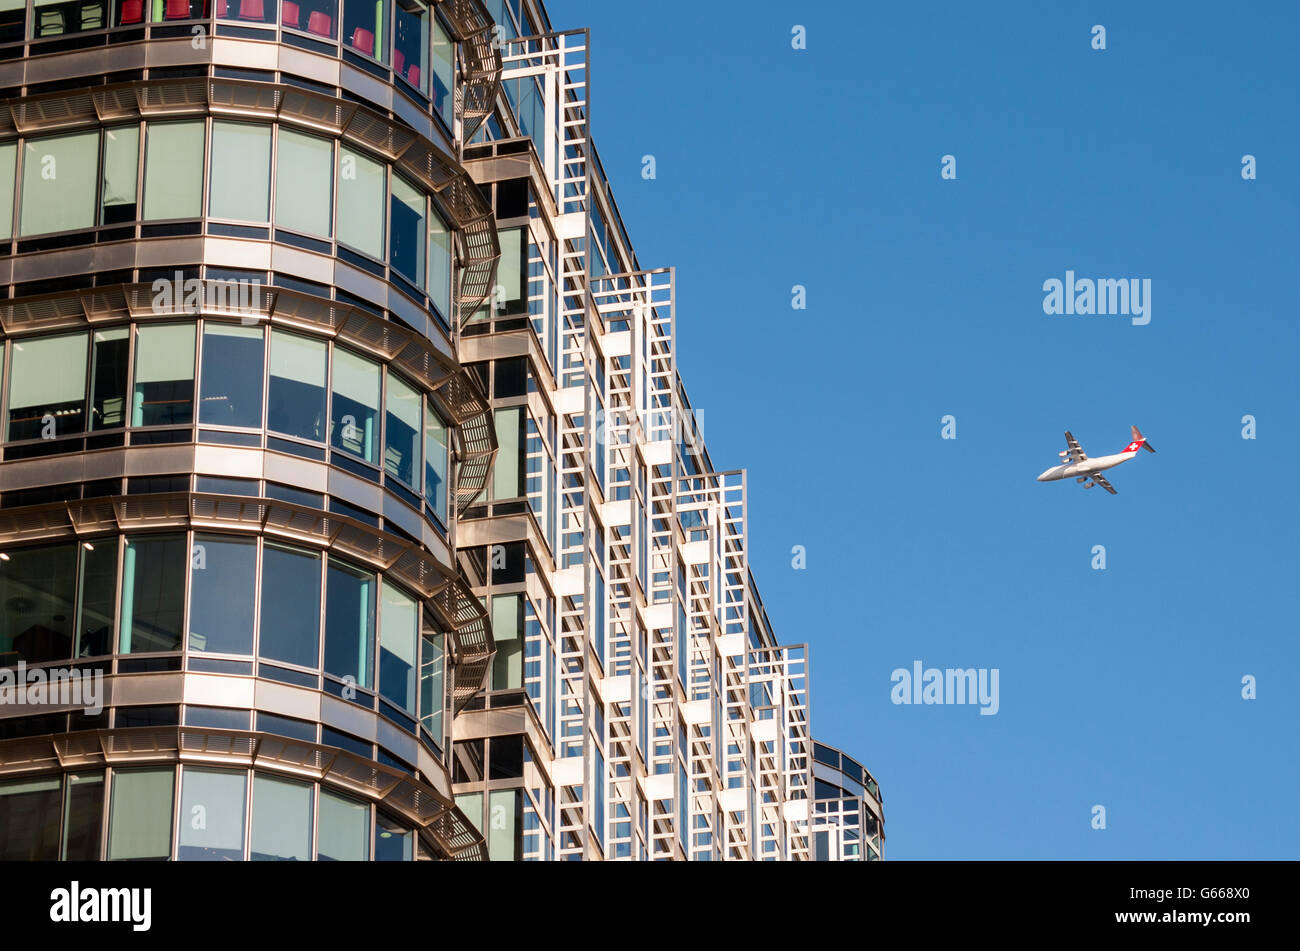 British Aerospace Avro RJ100 Airliner and office building at 20 Canada Square, designed by Adrian D. Smith of Skidmore - Stock Image